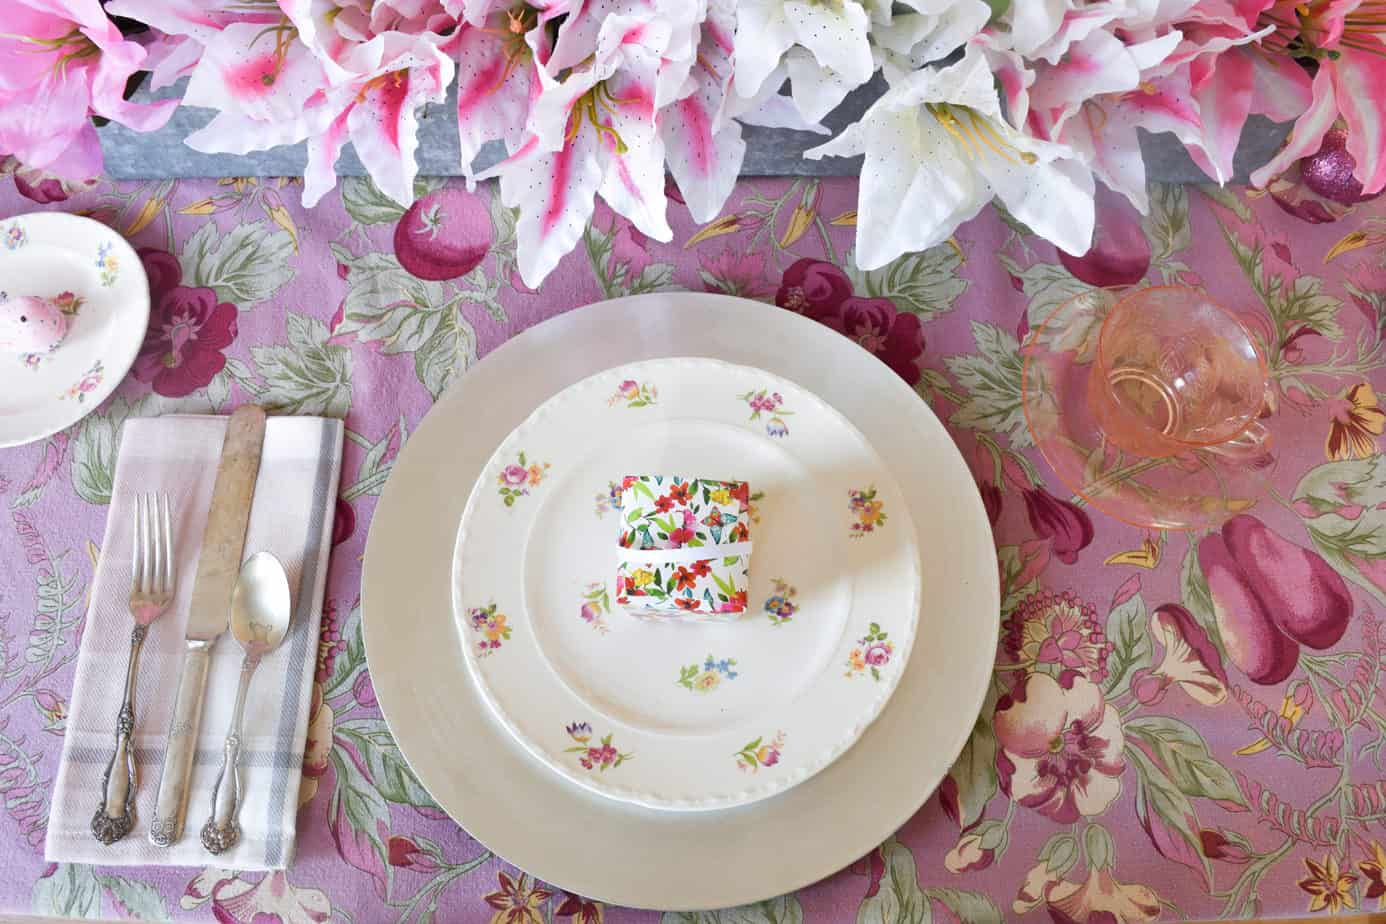 vintage floral plate atop a silver charger with a treat box on a pink Easter tablescape